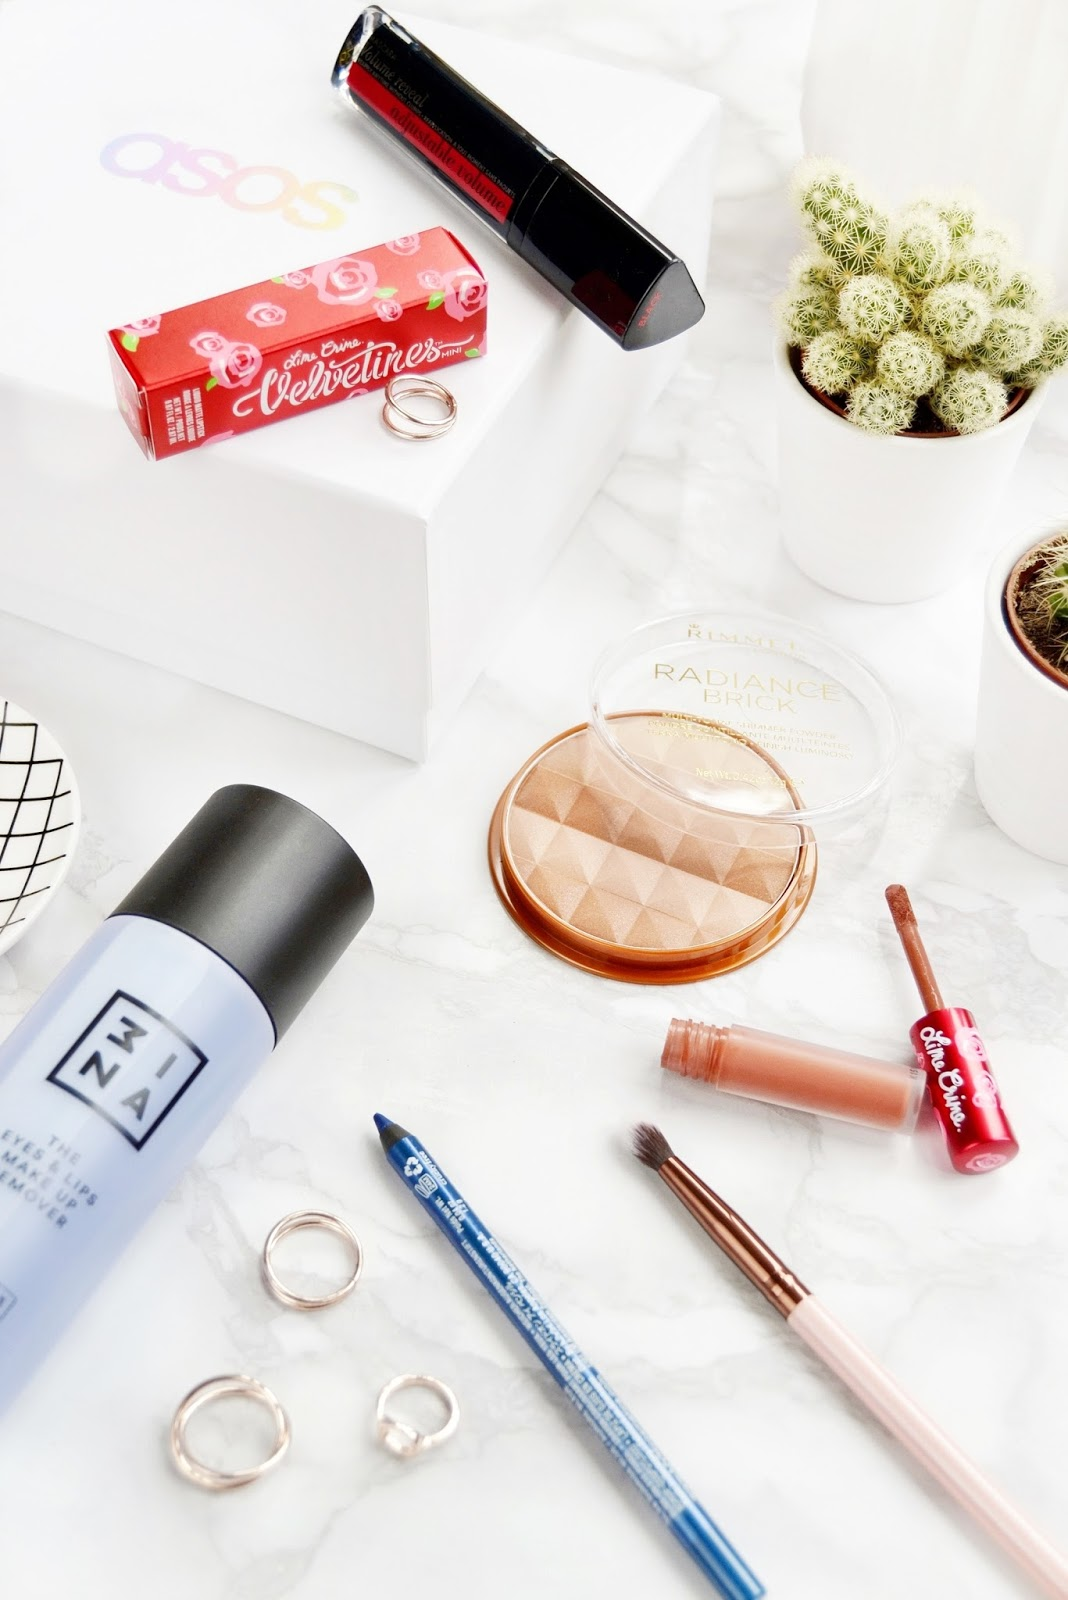 ASOS Have Launched Their Own Beauty Box And You Won't